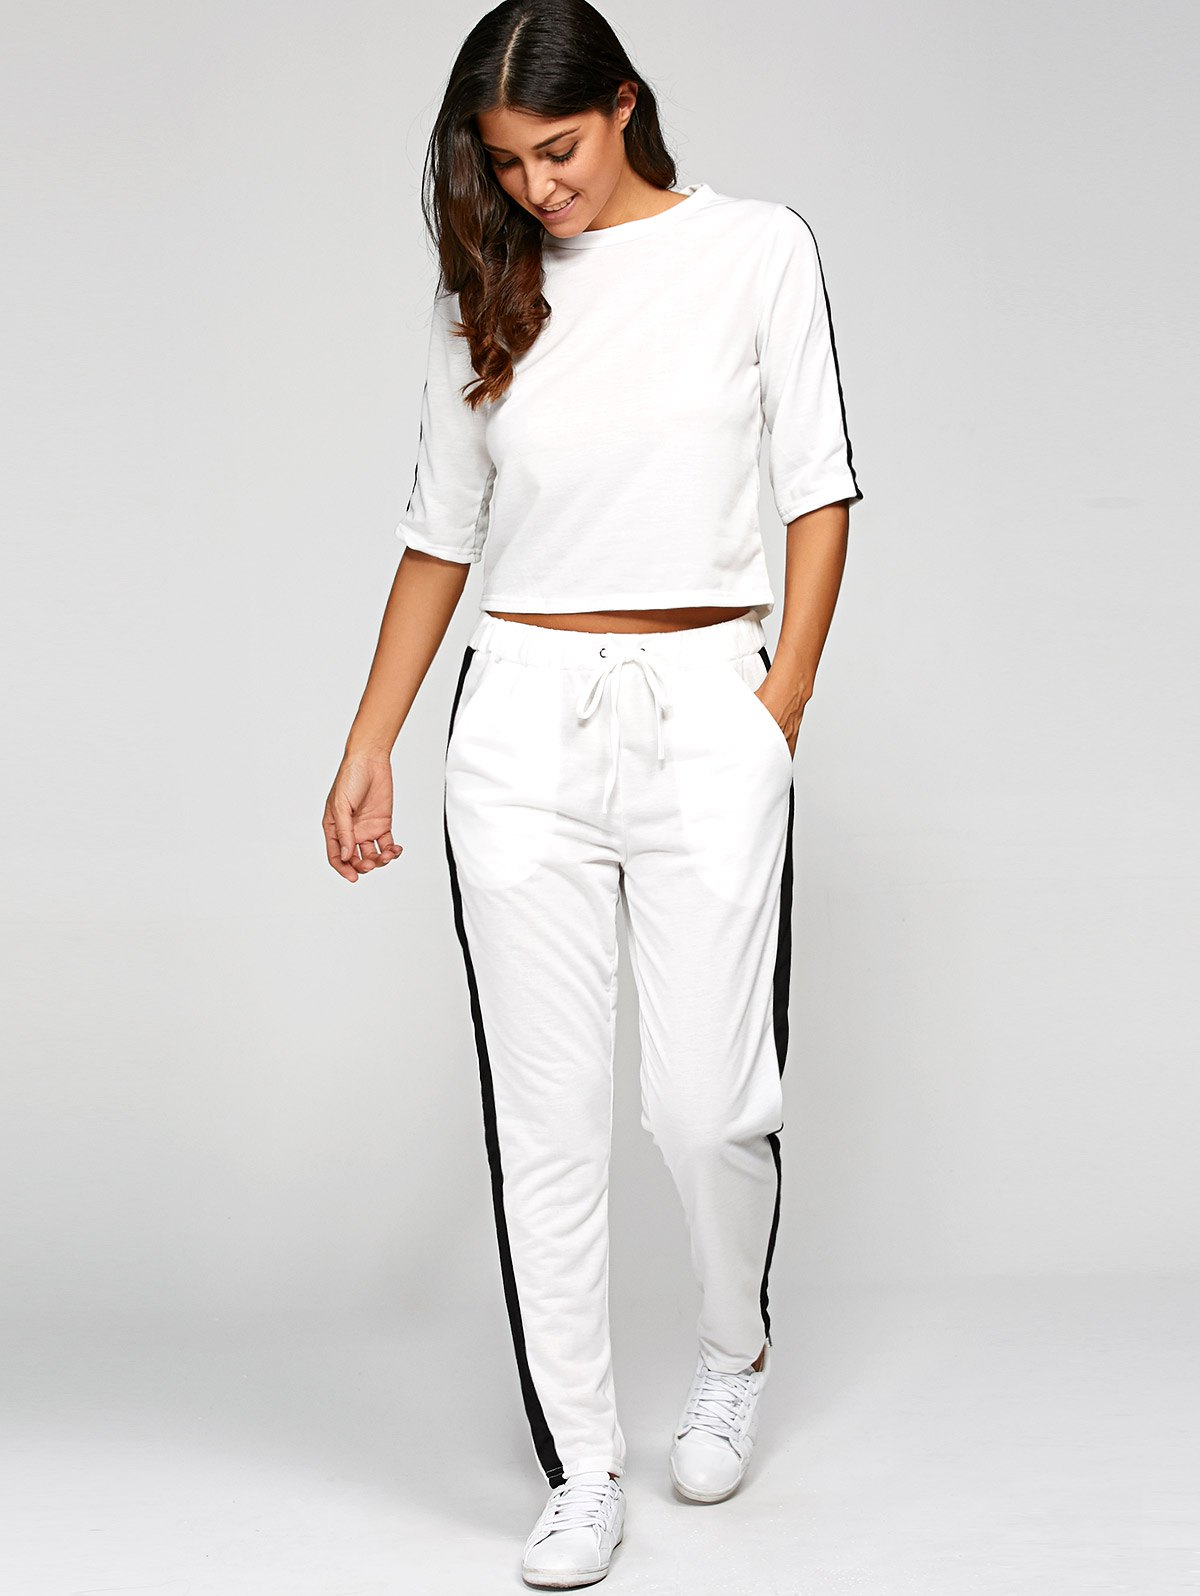 1/2 Sleeve T Shirt With Pants